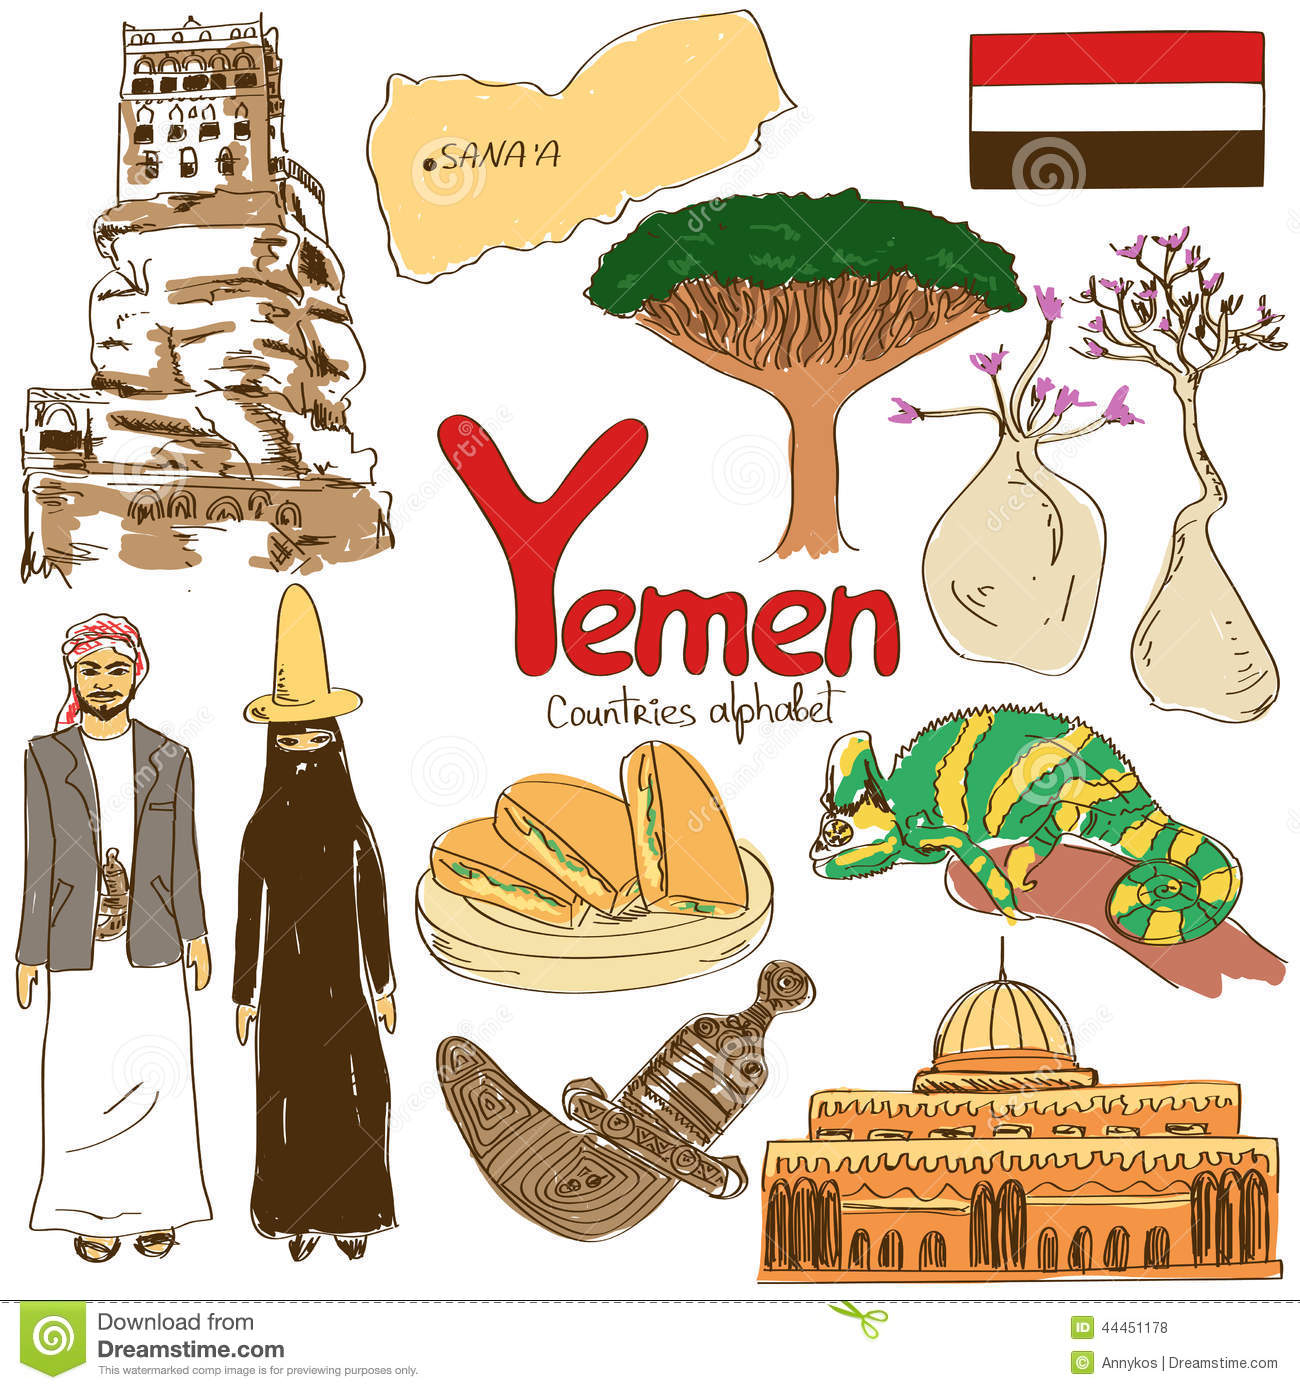 Yemen Map Vector, Yemen Flag Vector, Isolated Yemen Stock Vector.